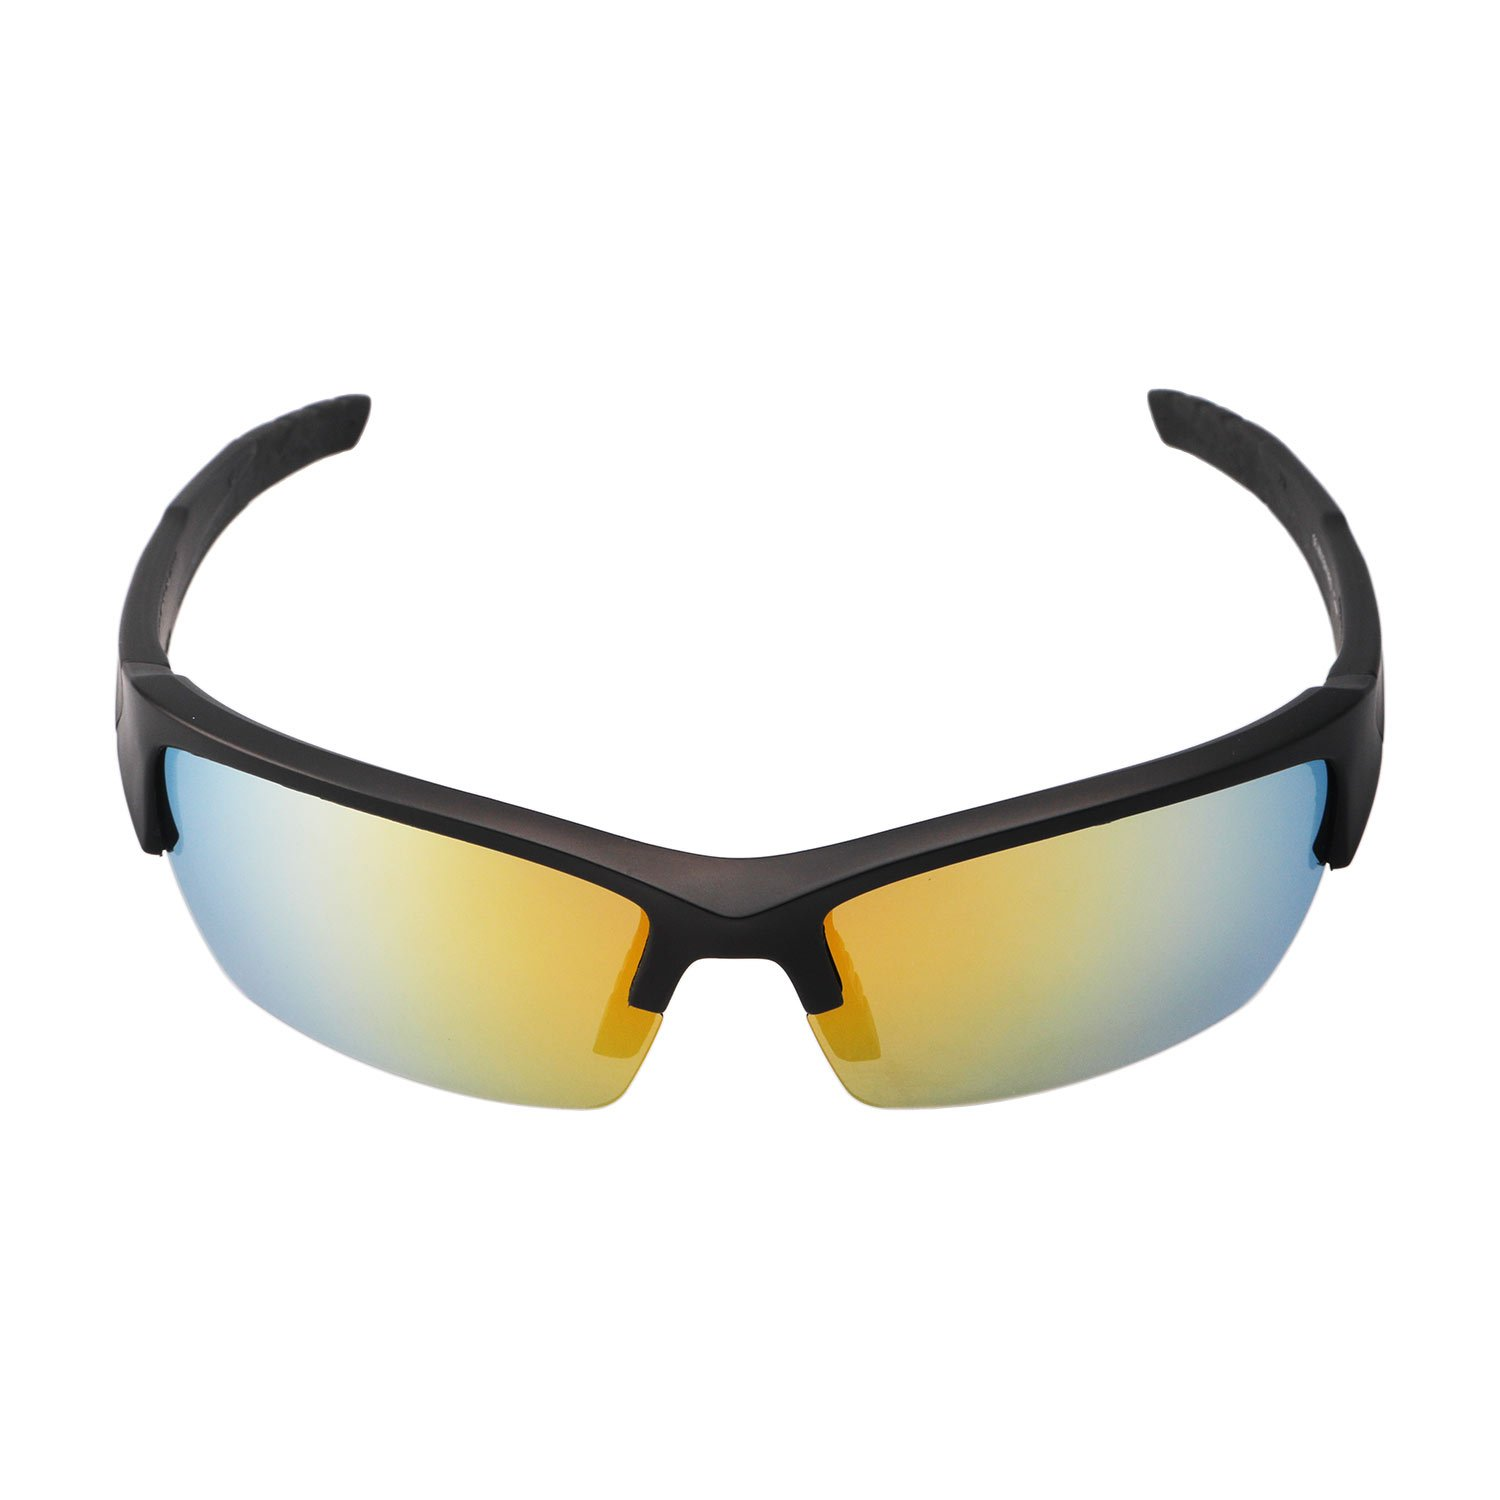 cf2332097a66 Walleva Replacement Lenses for Wiley X Valor Sunglasses - Multiple Options  Available (24K Gold - Polarized) at Amazon Men's Clothing store: